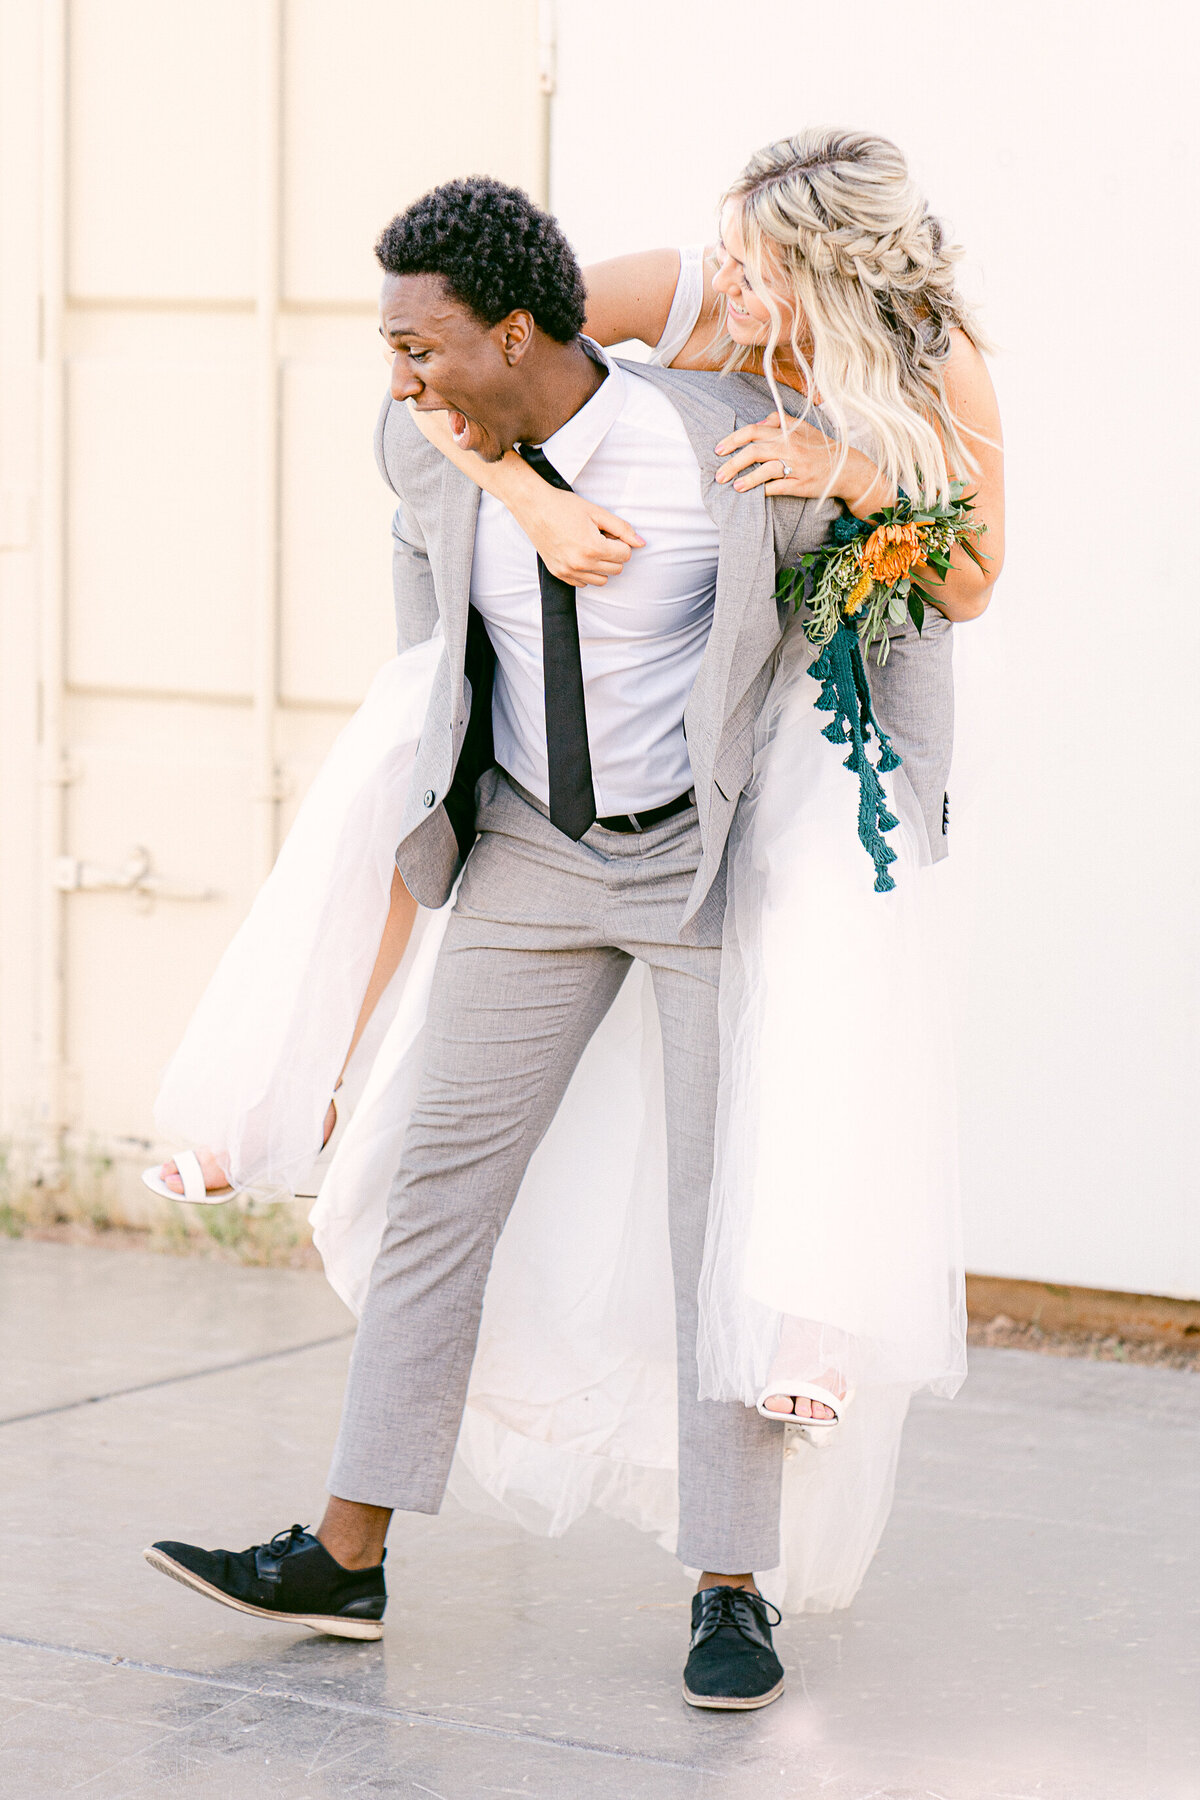 Phoenix Wedding Photographer - Arizona Elopement Photographer - Atlas Rose Photography AZ01